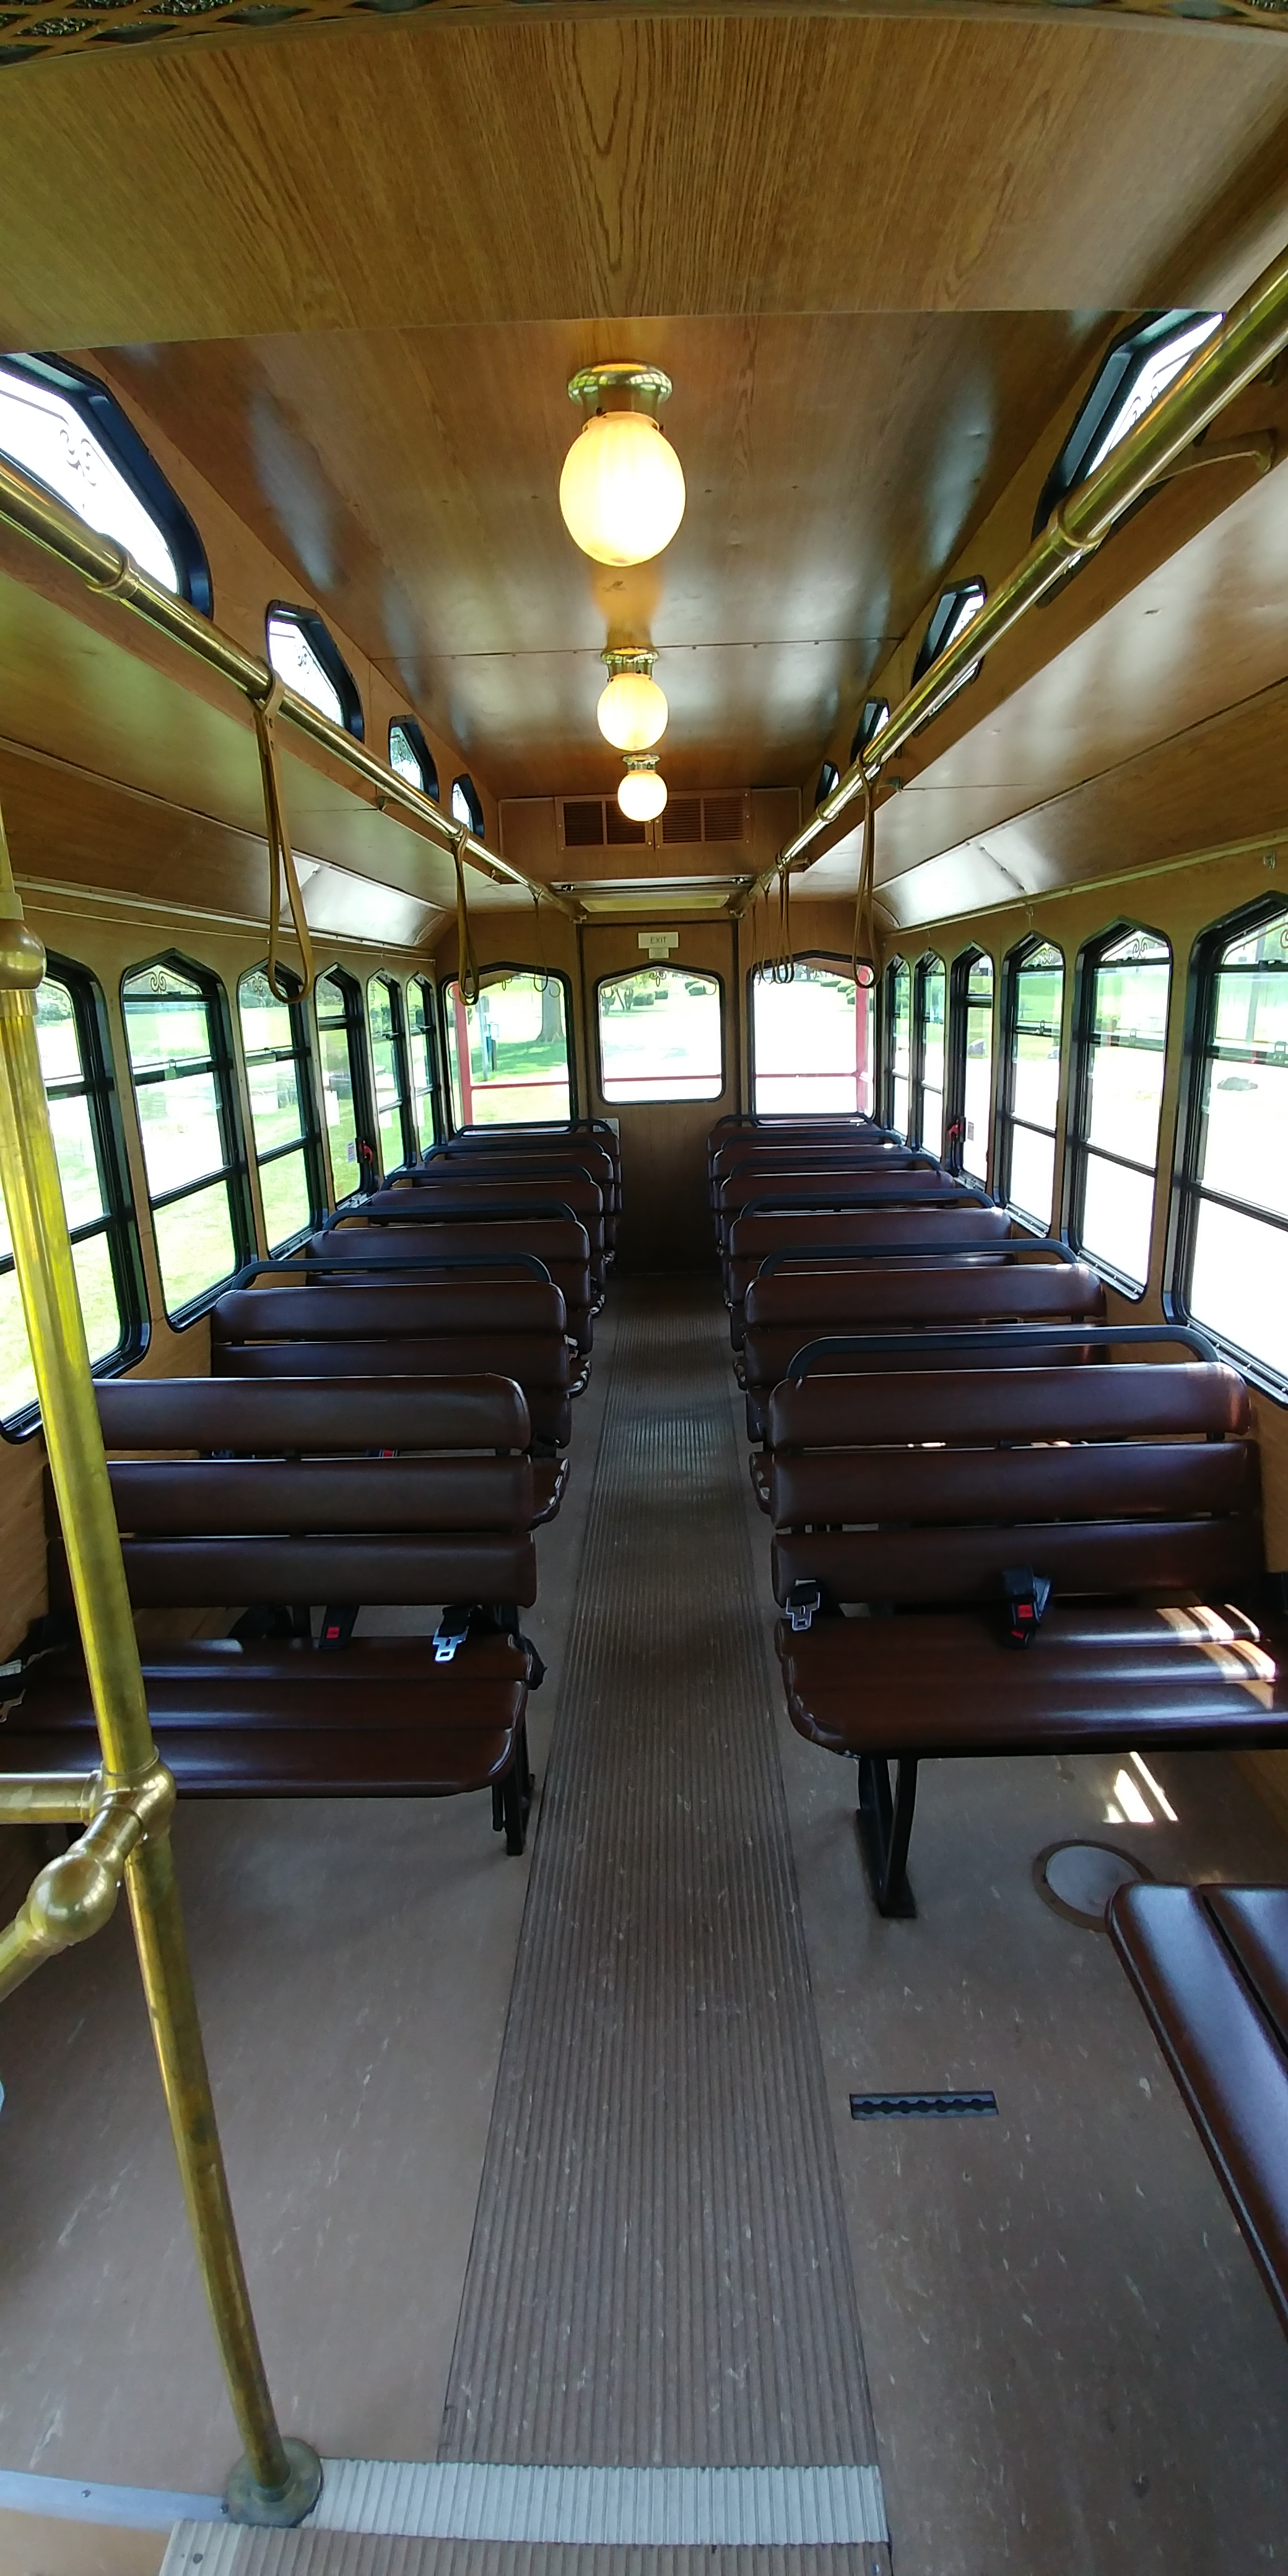 27 Passenger Trolley Interior 5